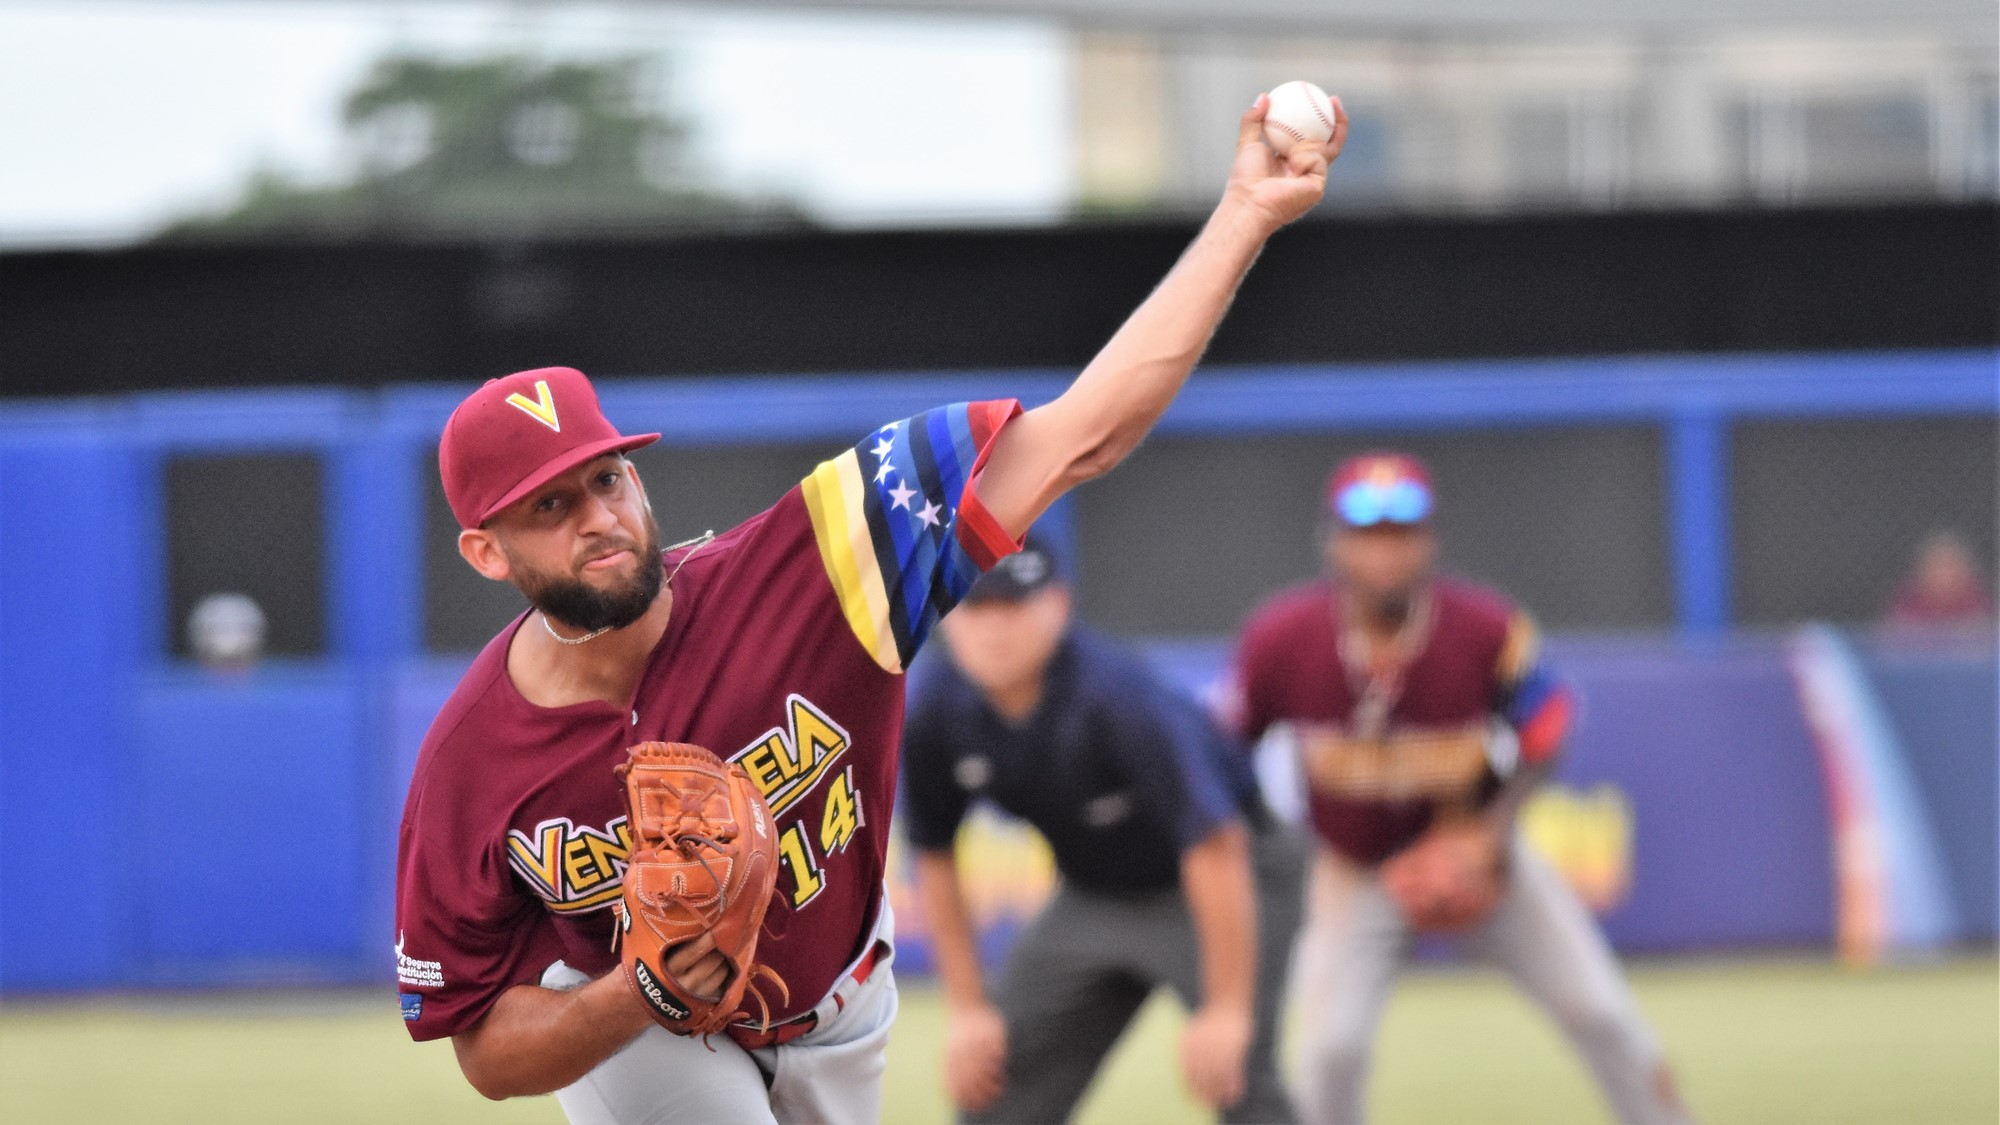 Venezuela reliever Ivan Andueza pitched six solid innings before giving up a tie breaking home run